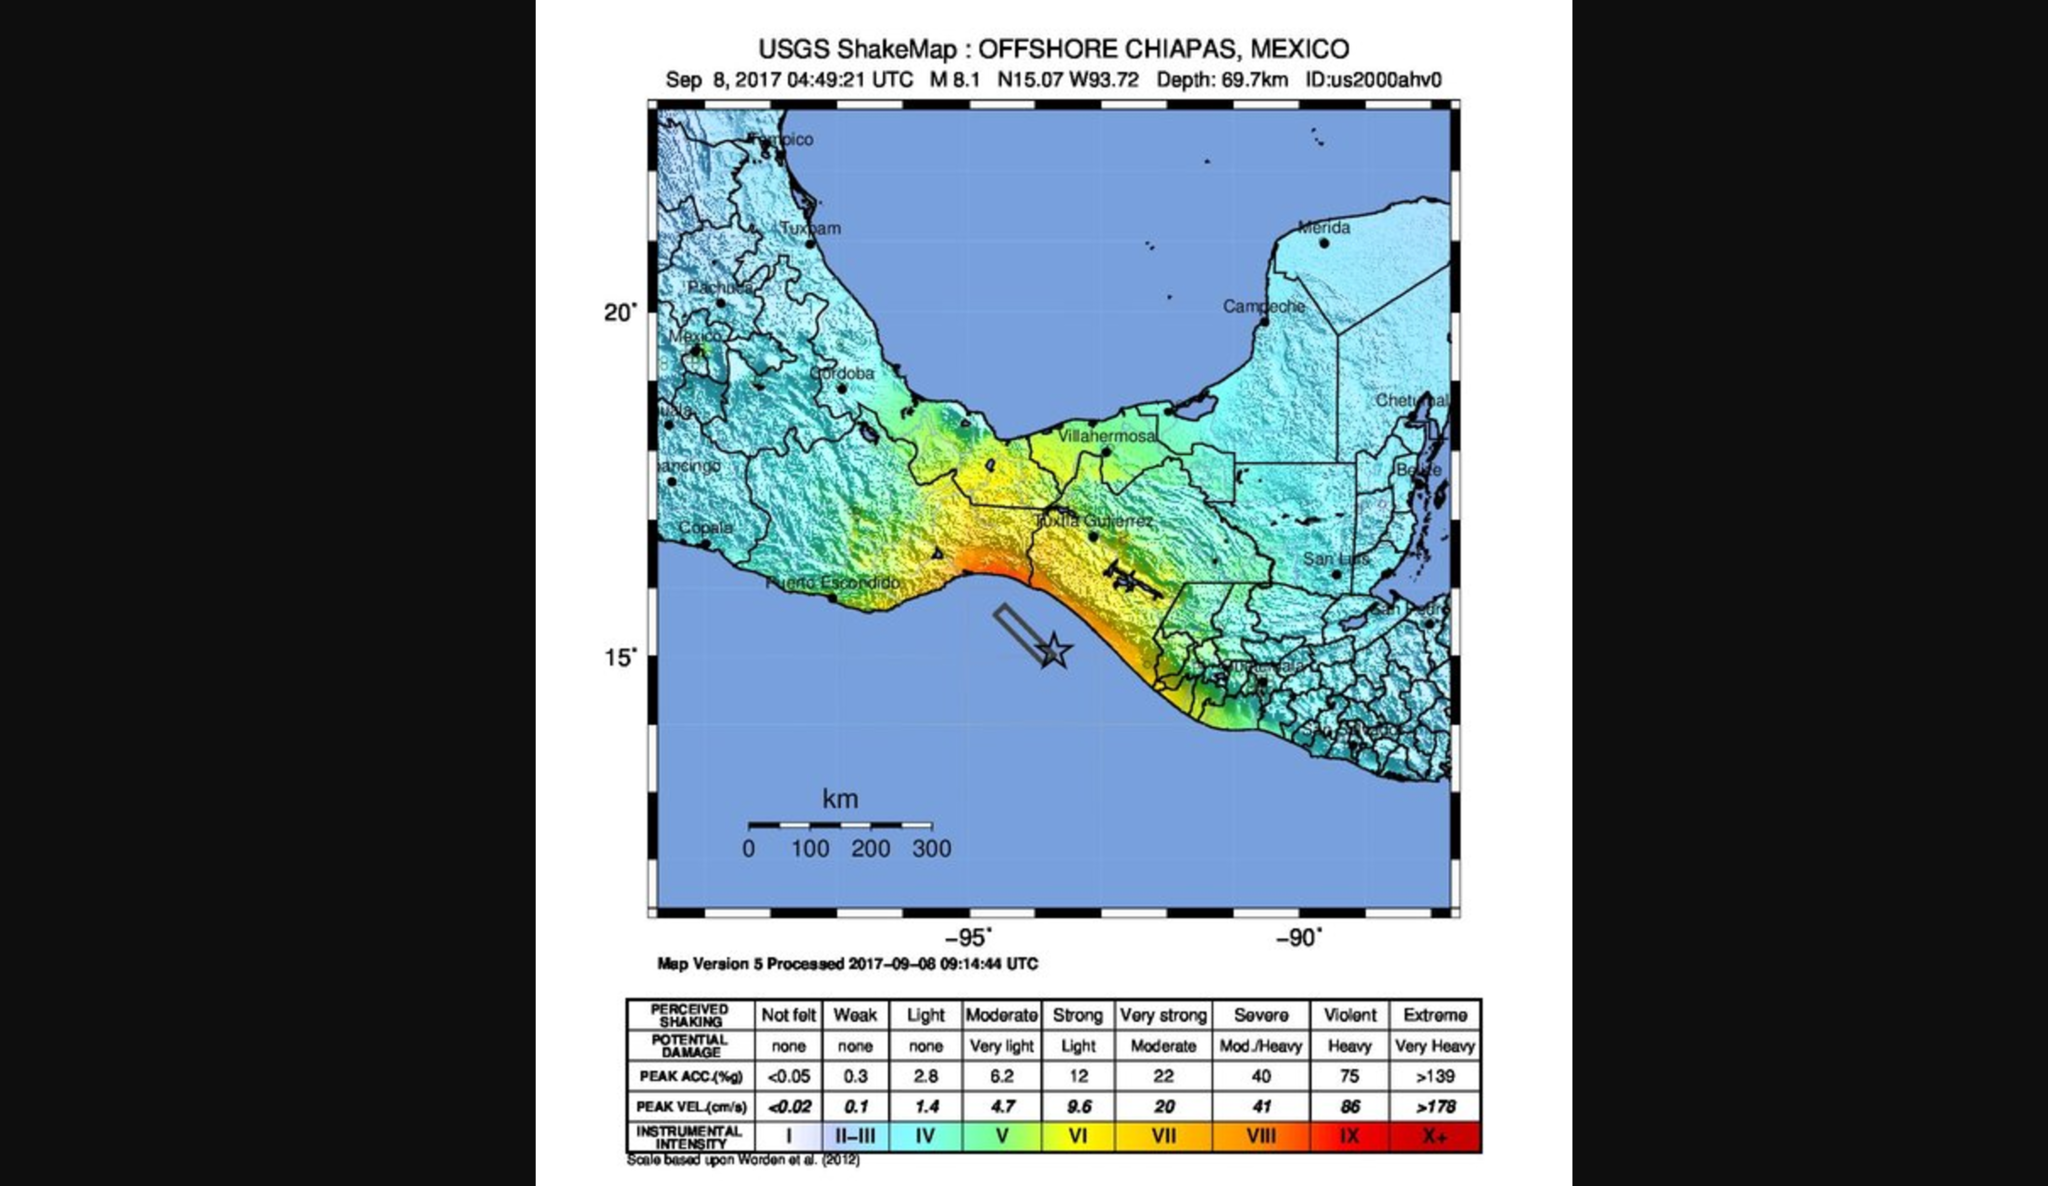 la-1504895660-bpnmzn1xdk-snap-image California could experience a mega-quake the size of Mexico's